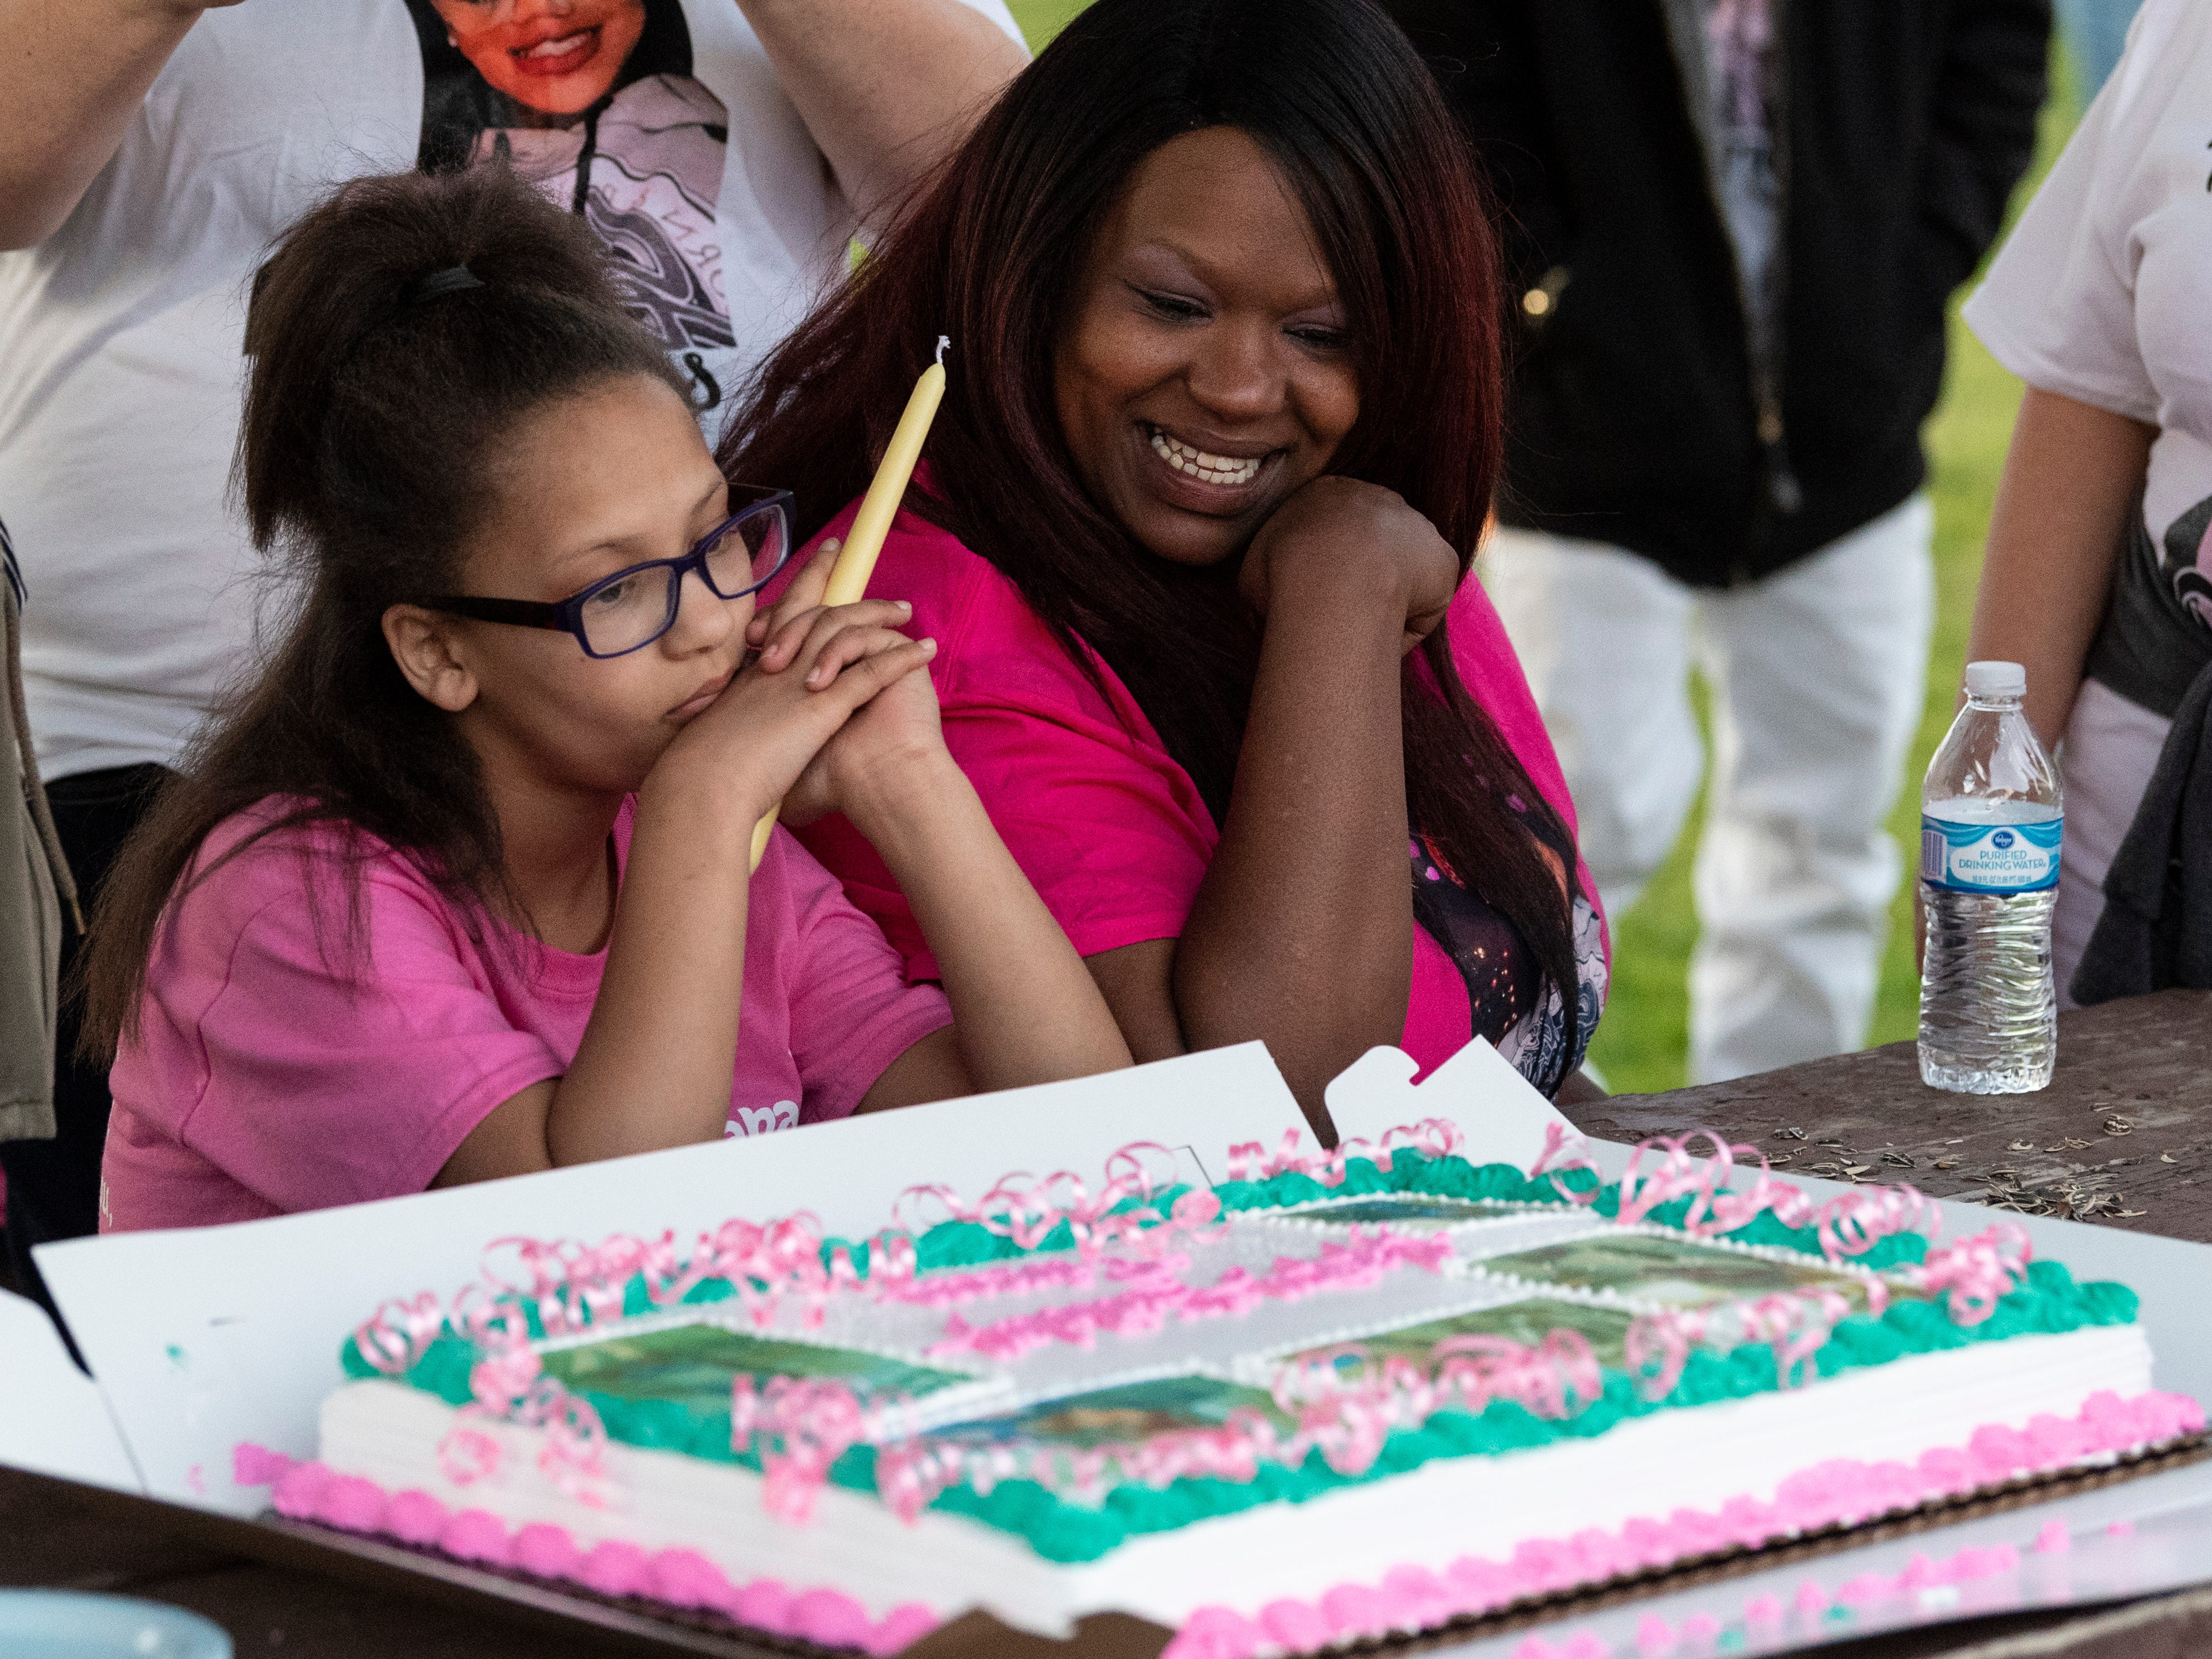 Family and friends of Dynasty Alexander gathered at Elk Bayou Regional Park on Saturday, March 16, 2019 for birthday cake and a candle light vigil in her memory. Alexander's body was found in an orchard outside of the city on March 3. She had been strangled and shot.